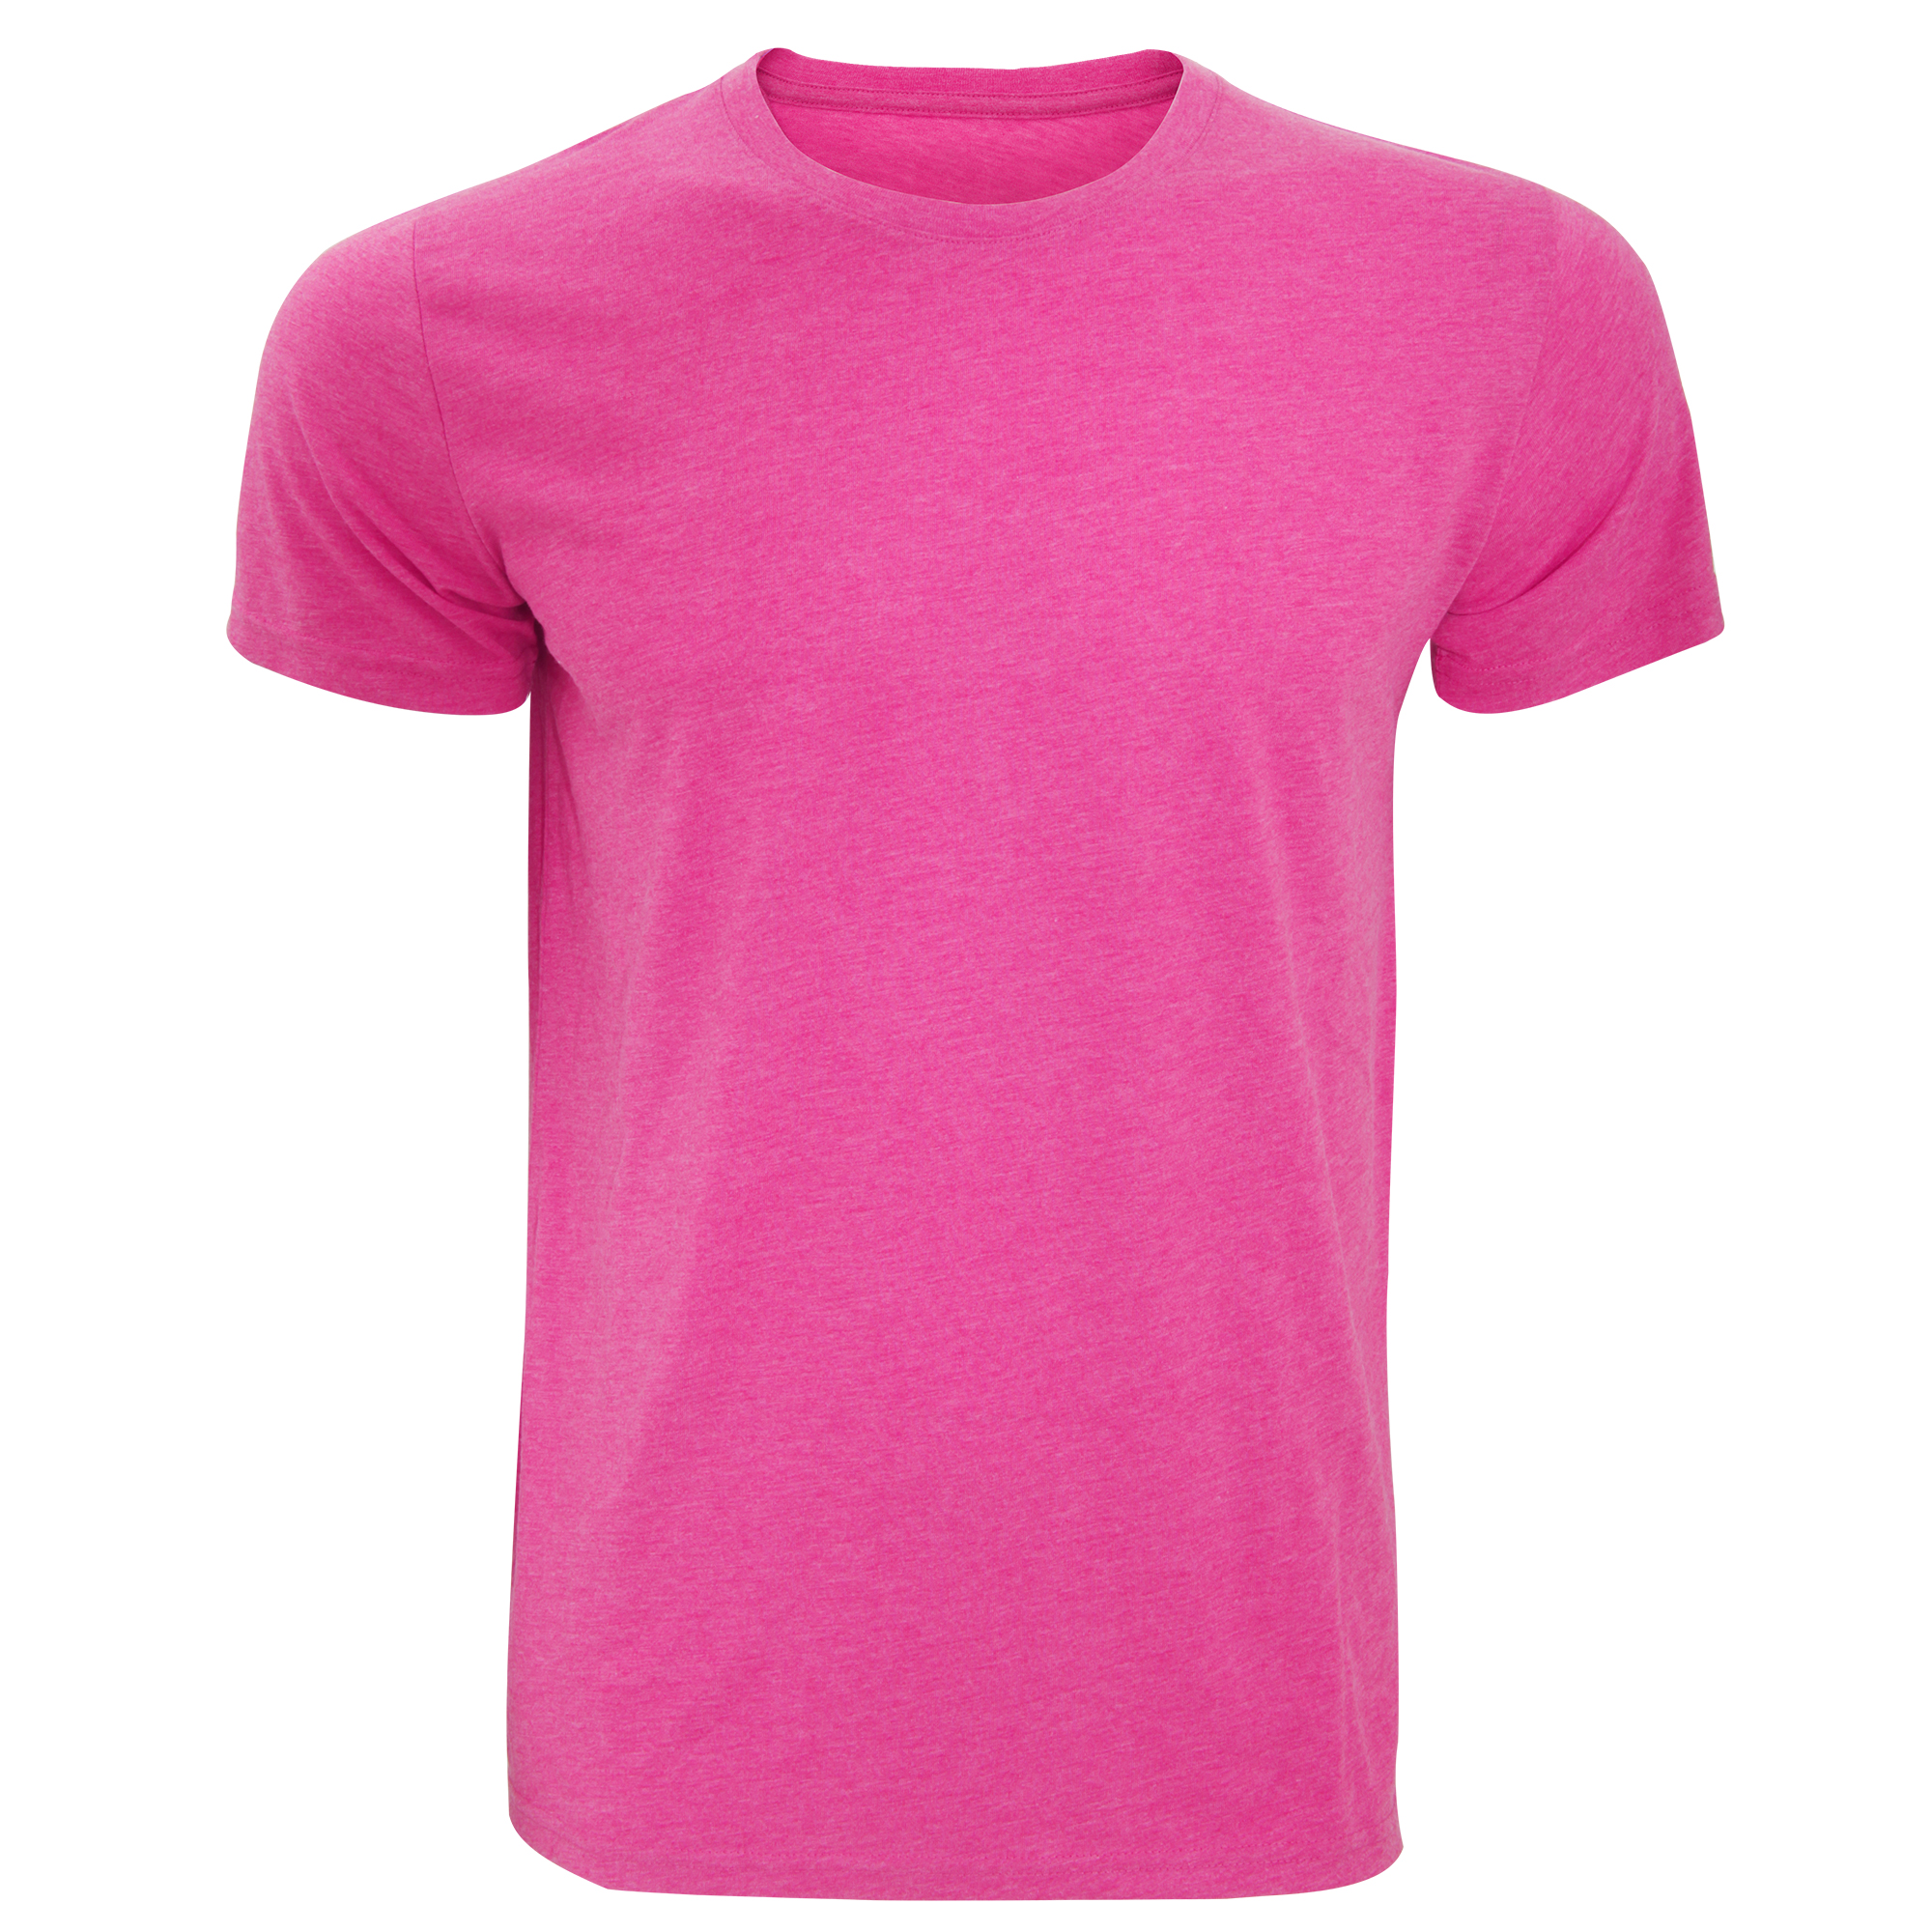 Russell mens slim fit short sleeve t shirt ebay for Athletic fit t shirts for men